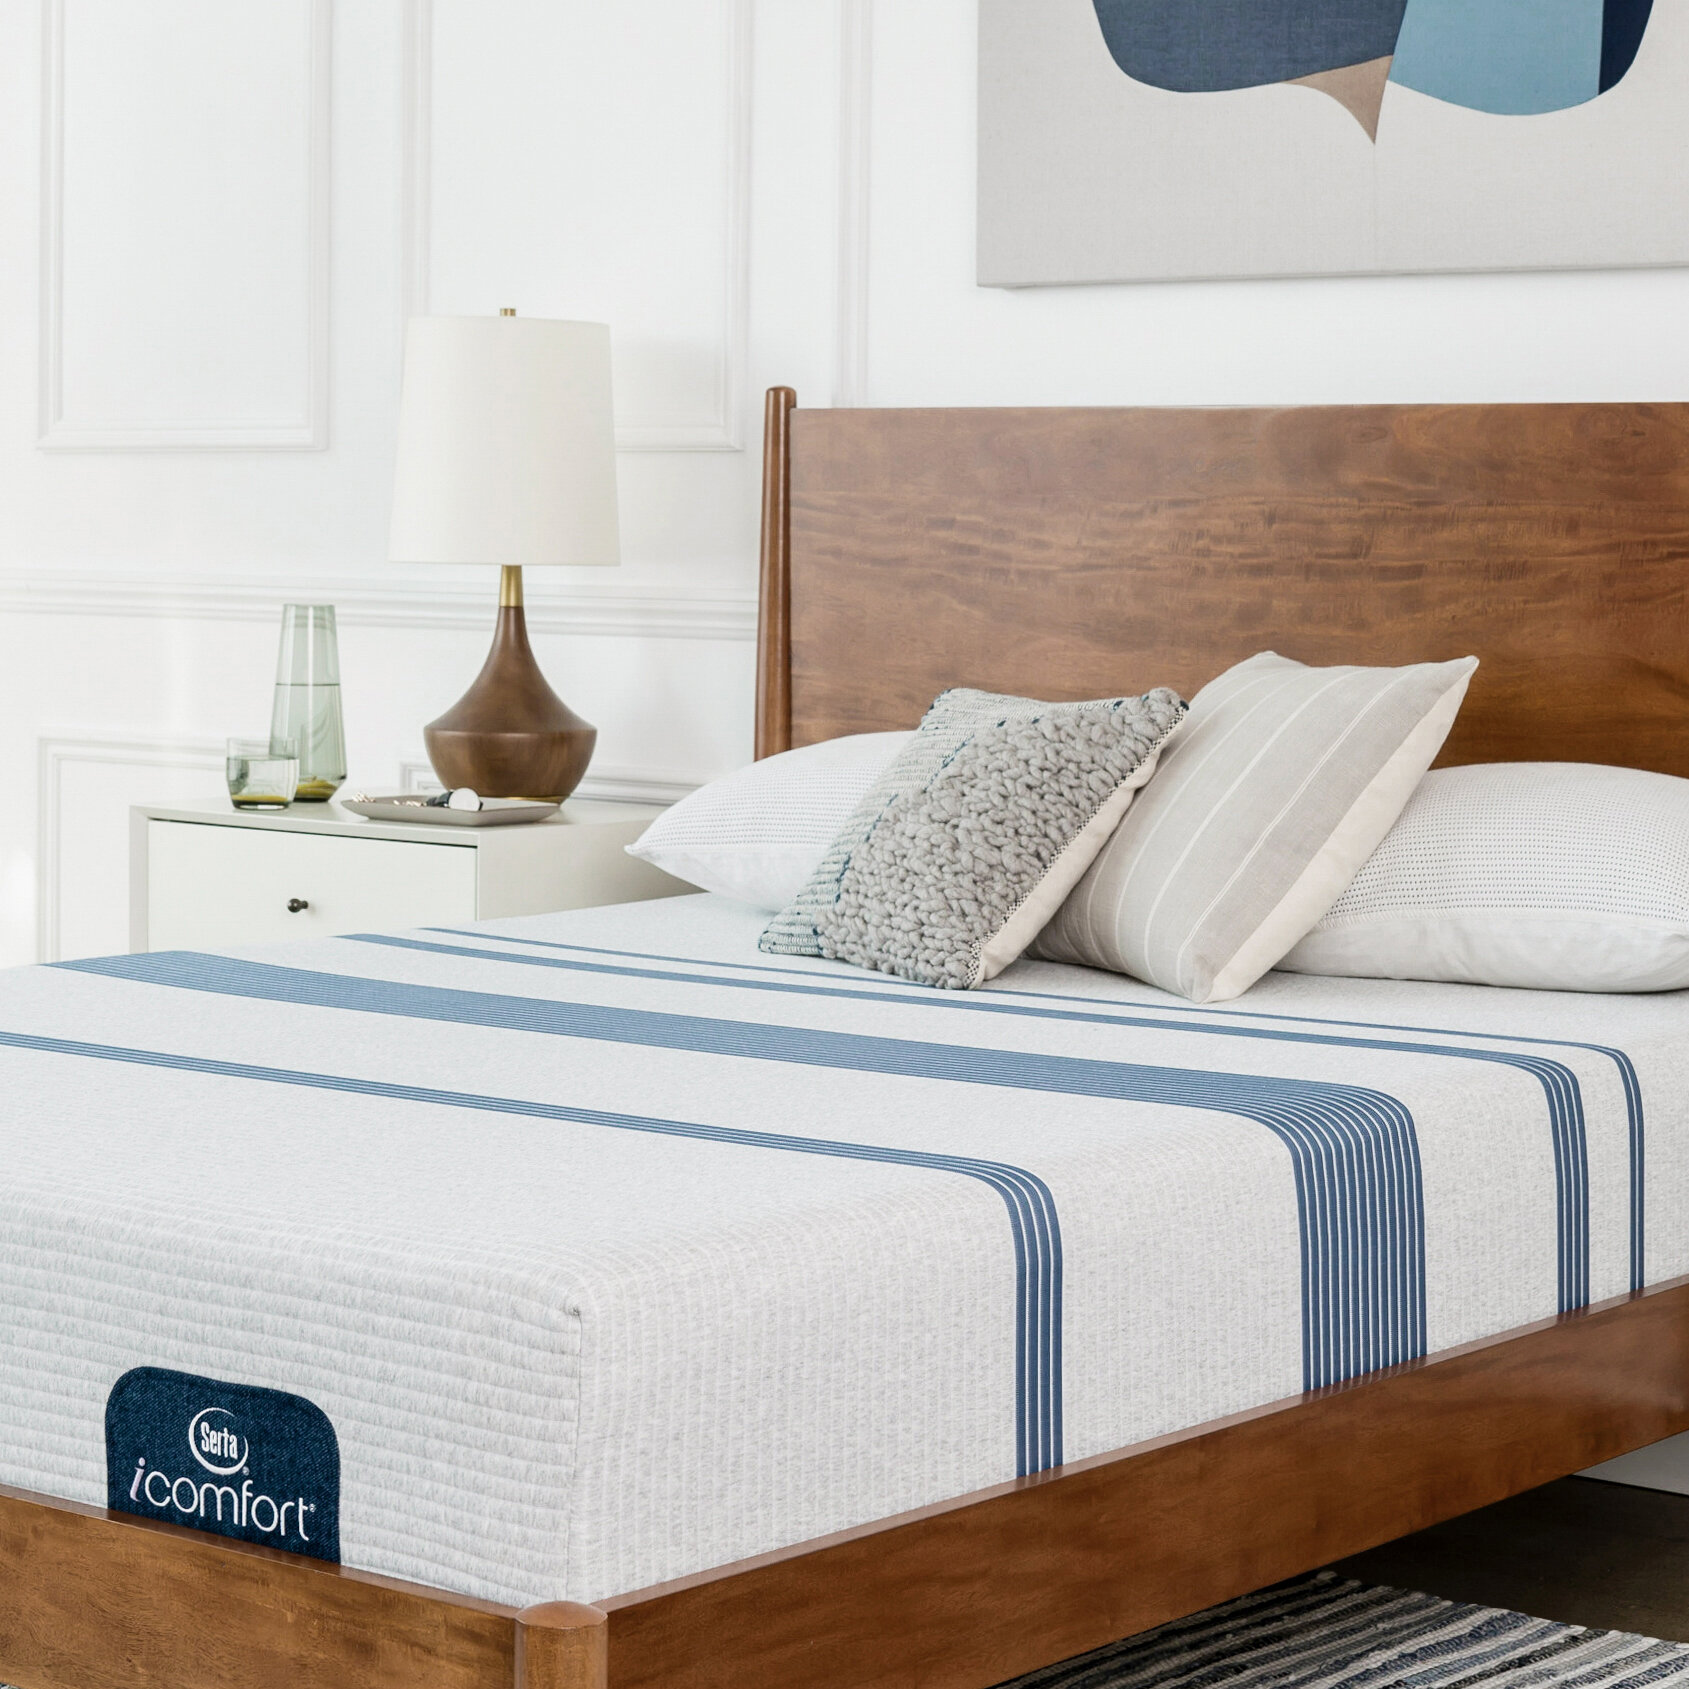 mattress artisans psbox sleeper plush t serta monteloma mattresses trescott perfect hardwood perfectsleeper